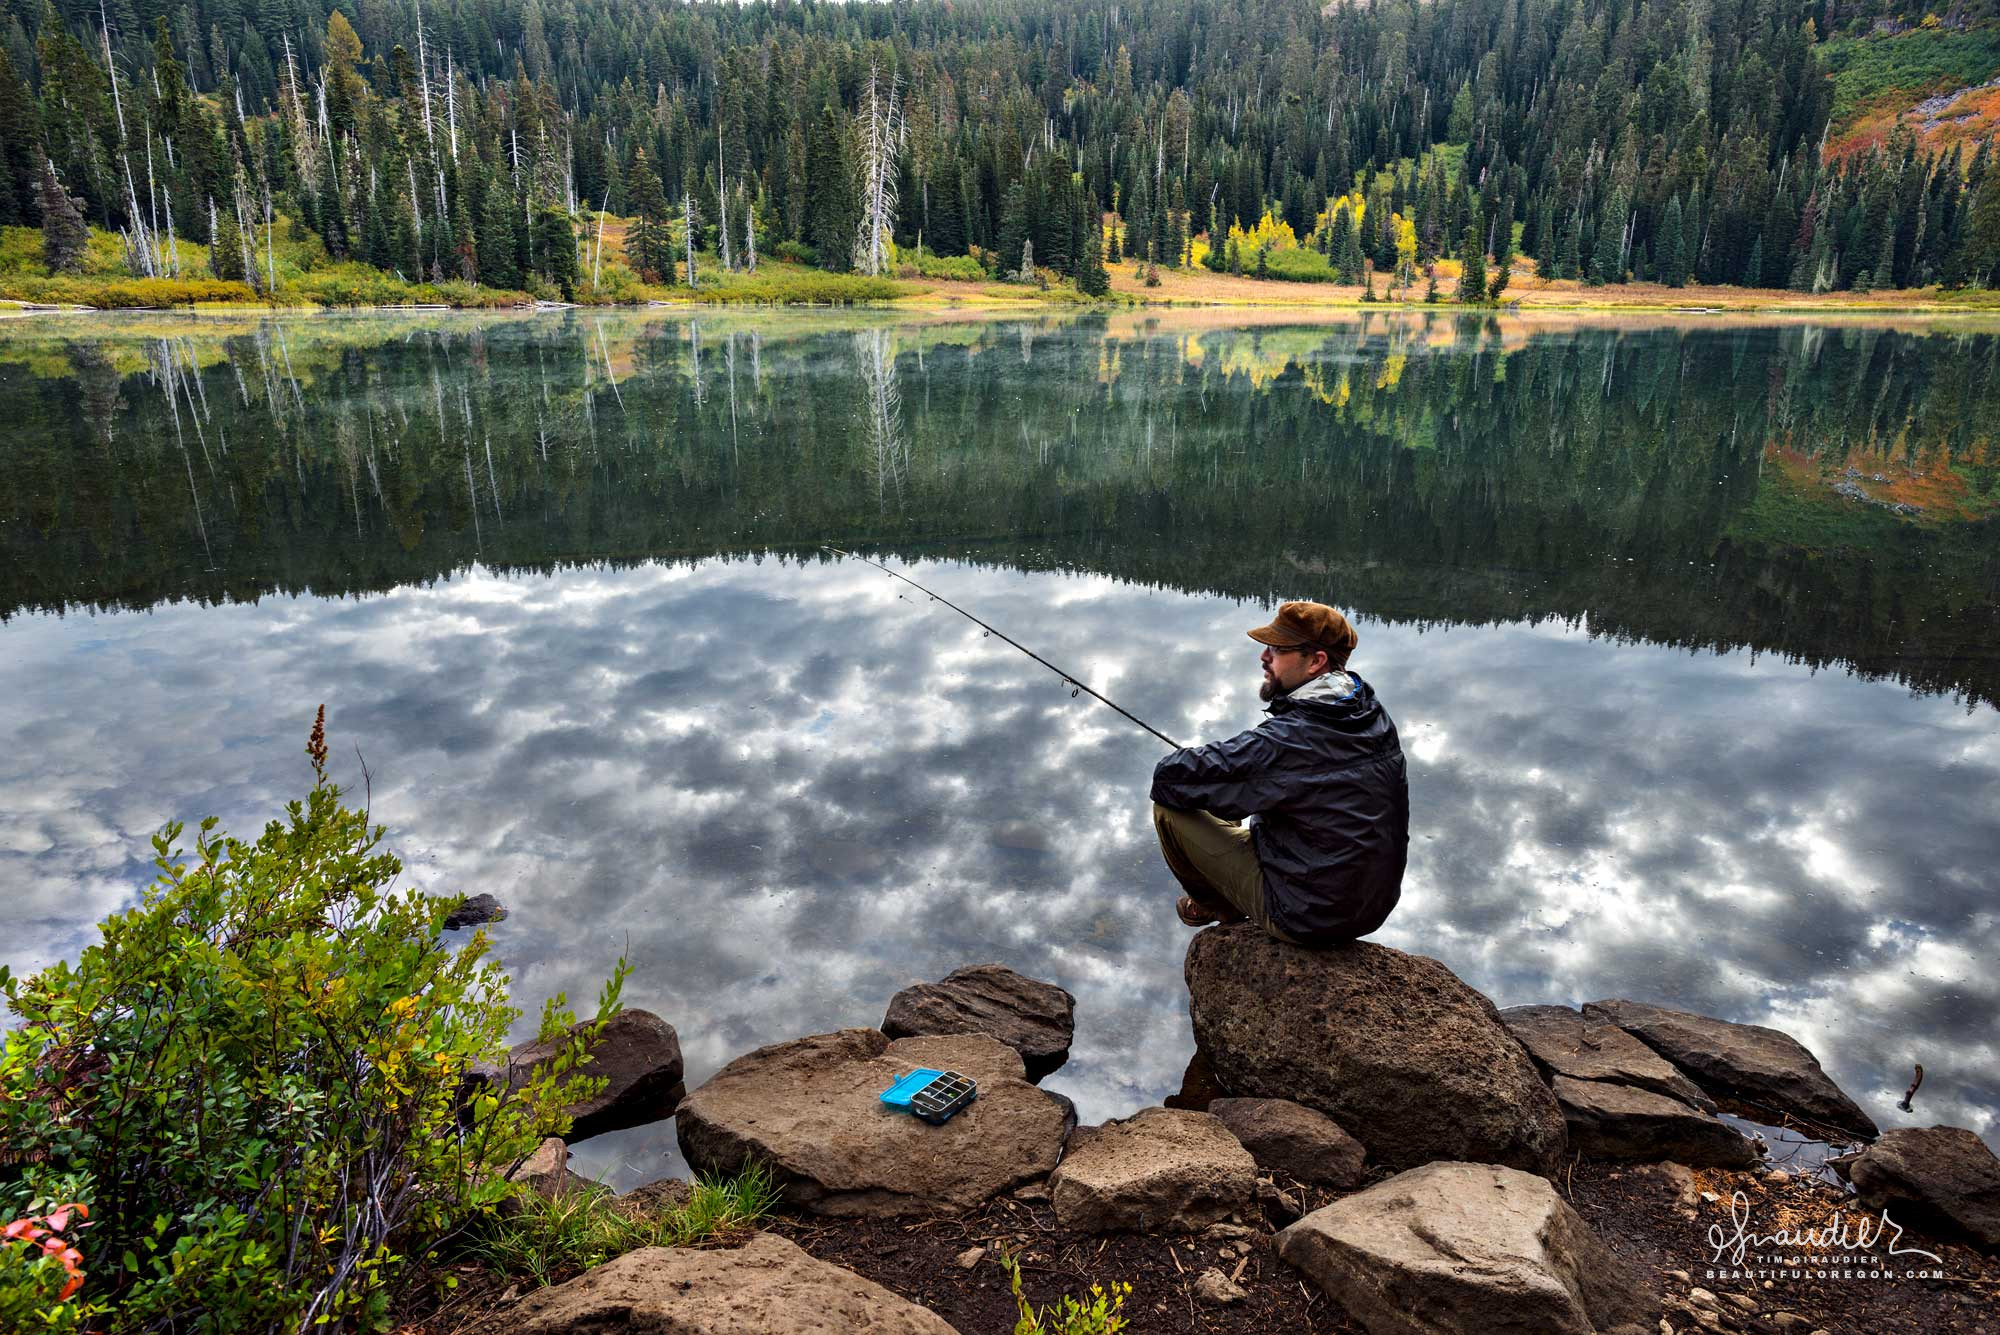 Brook Trout fishing in Oregon's high lakes. Willamette National Forest, Oregon Cascades.